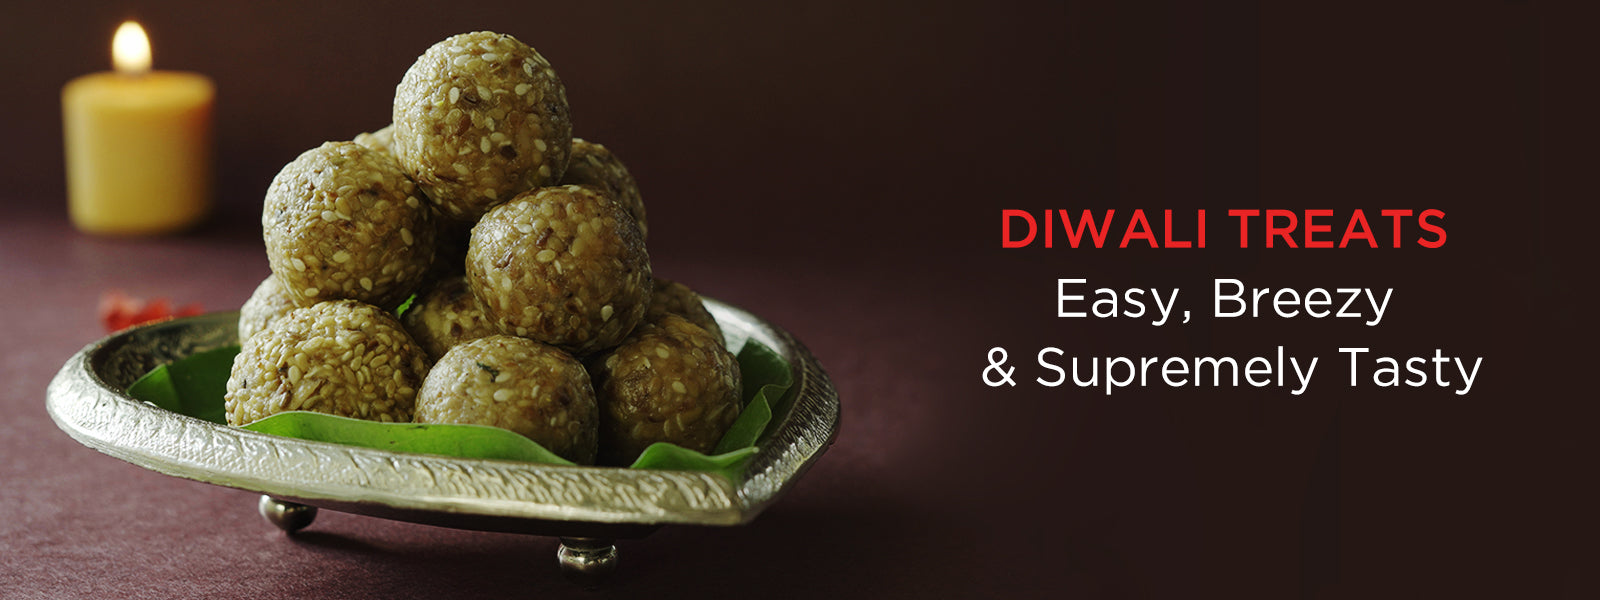 Quick & Easy Home-Made Diwali Recipes